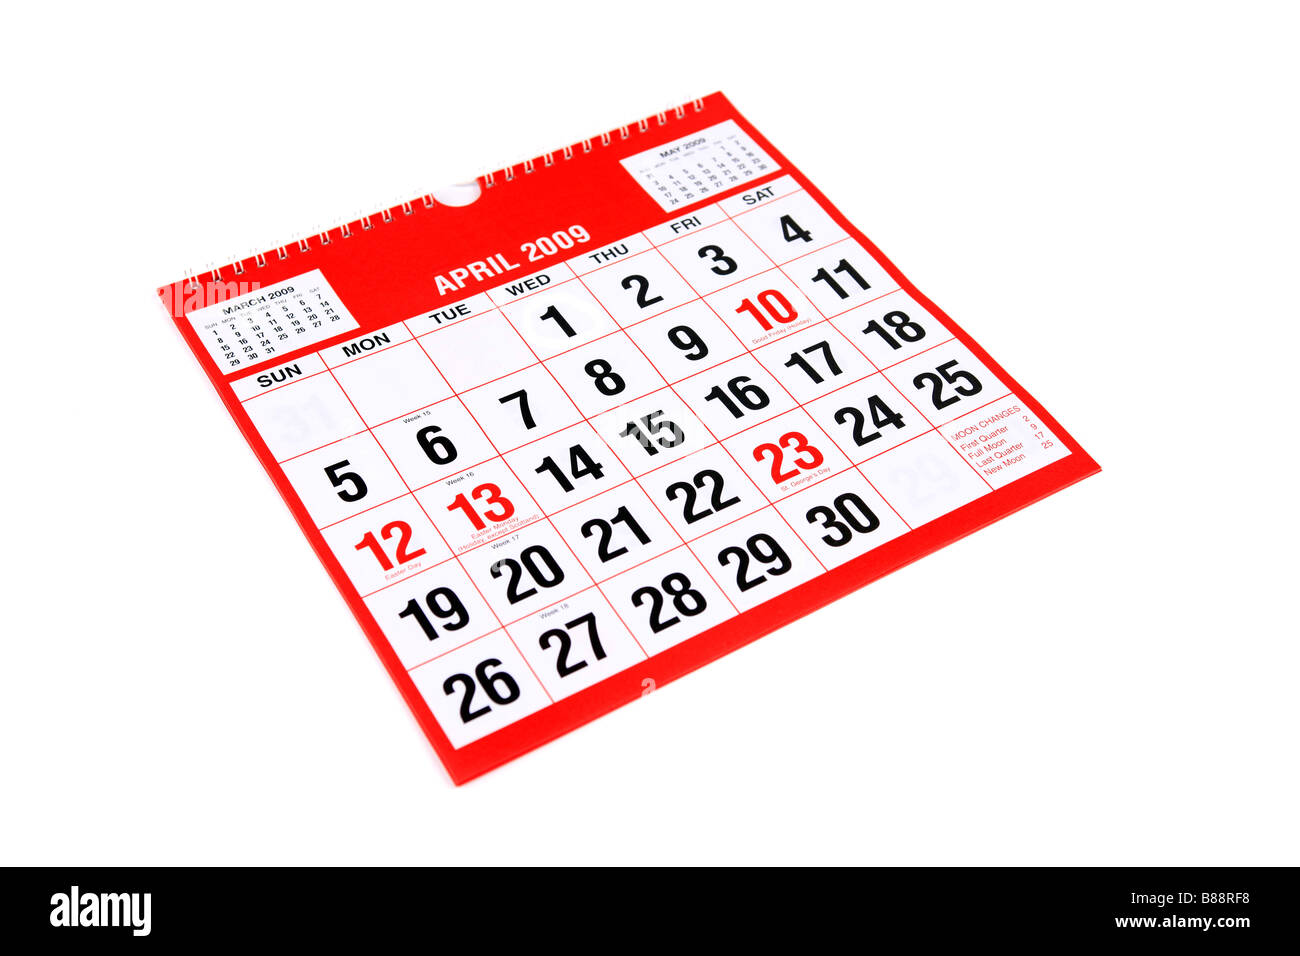 A calendar page with April 1st ringed to mark April Fools Day - Stock Image